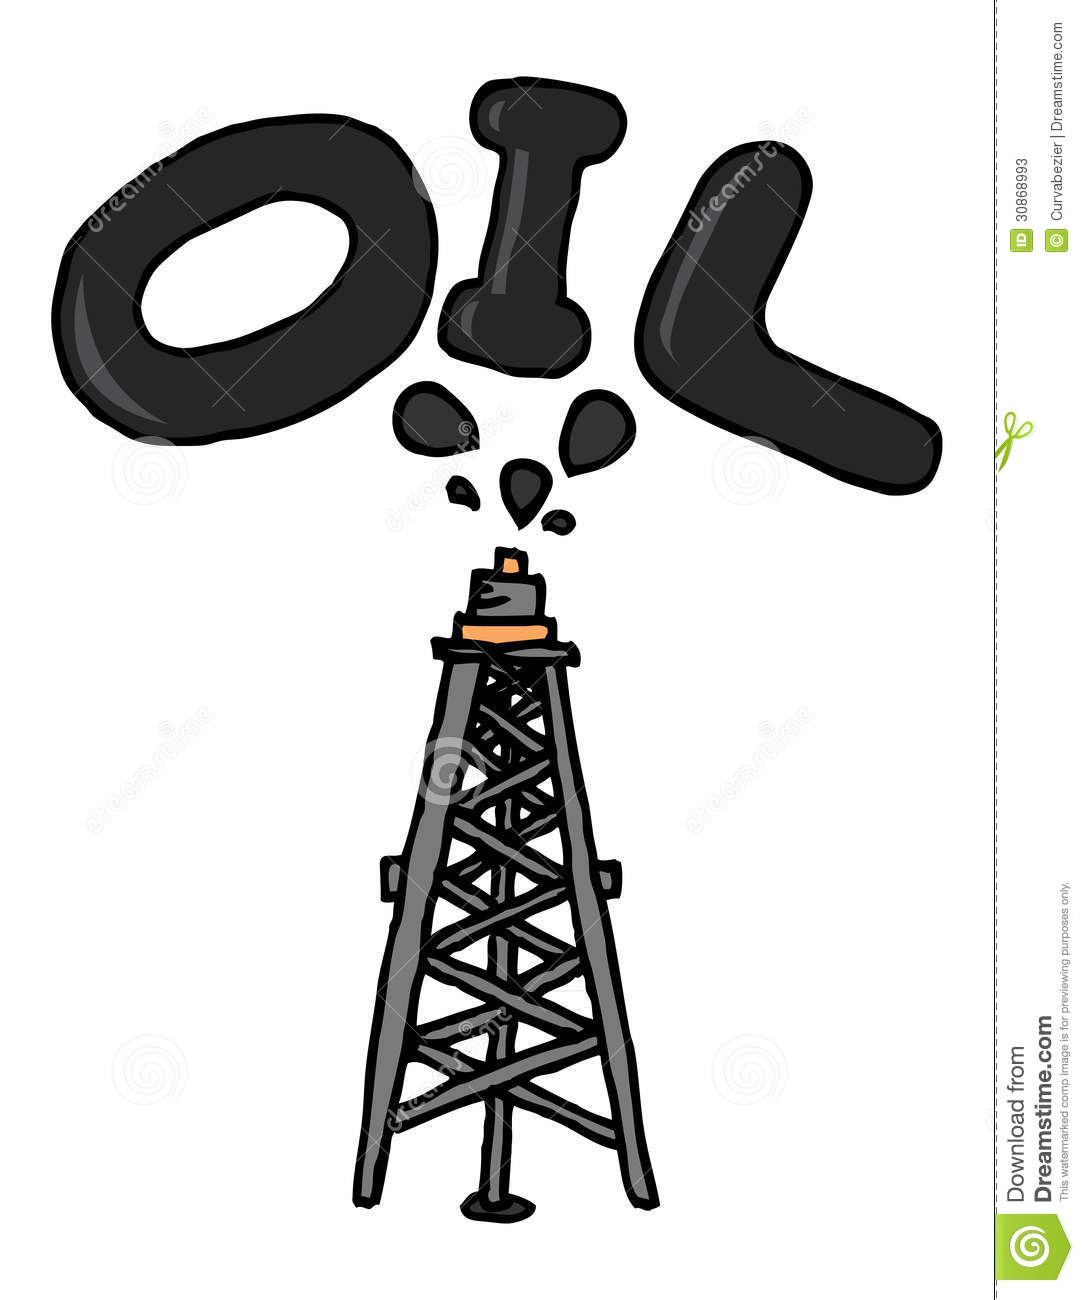 Oil Coming Out Of Pump Stock Photos - Image: 30868993